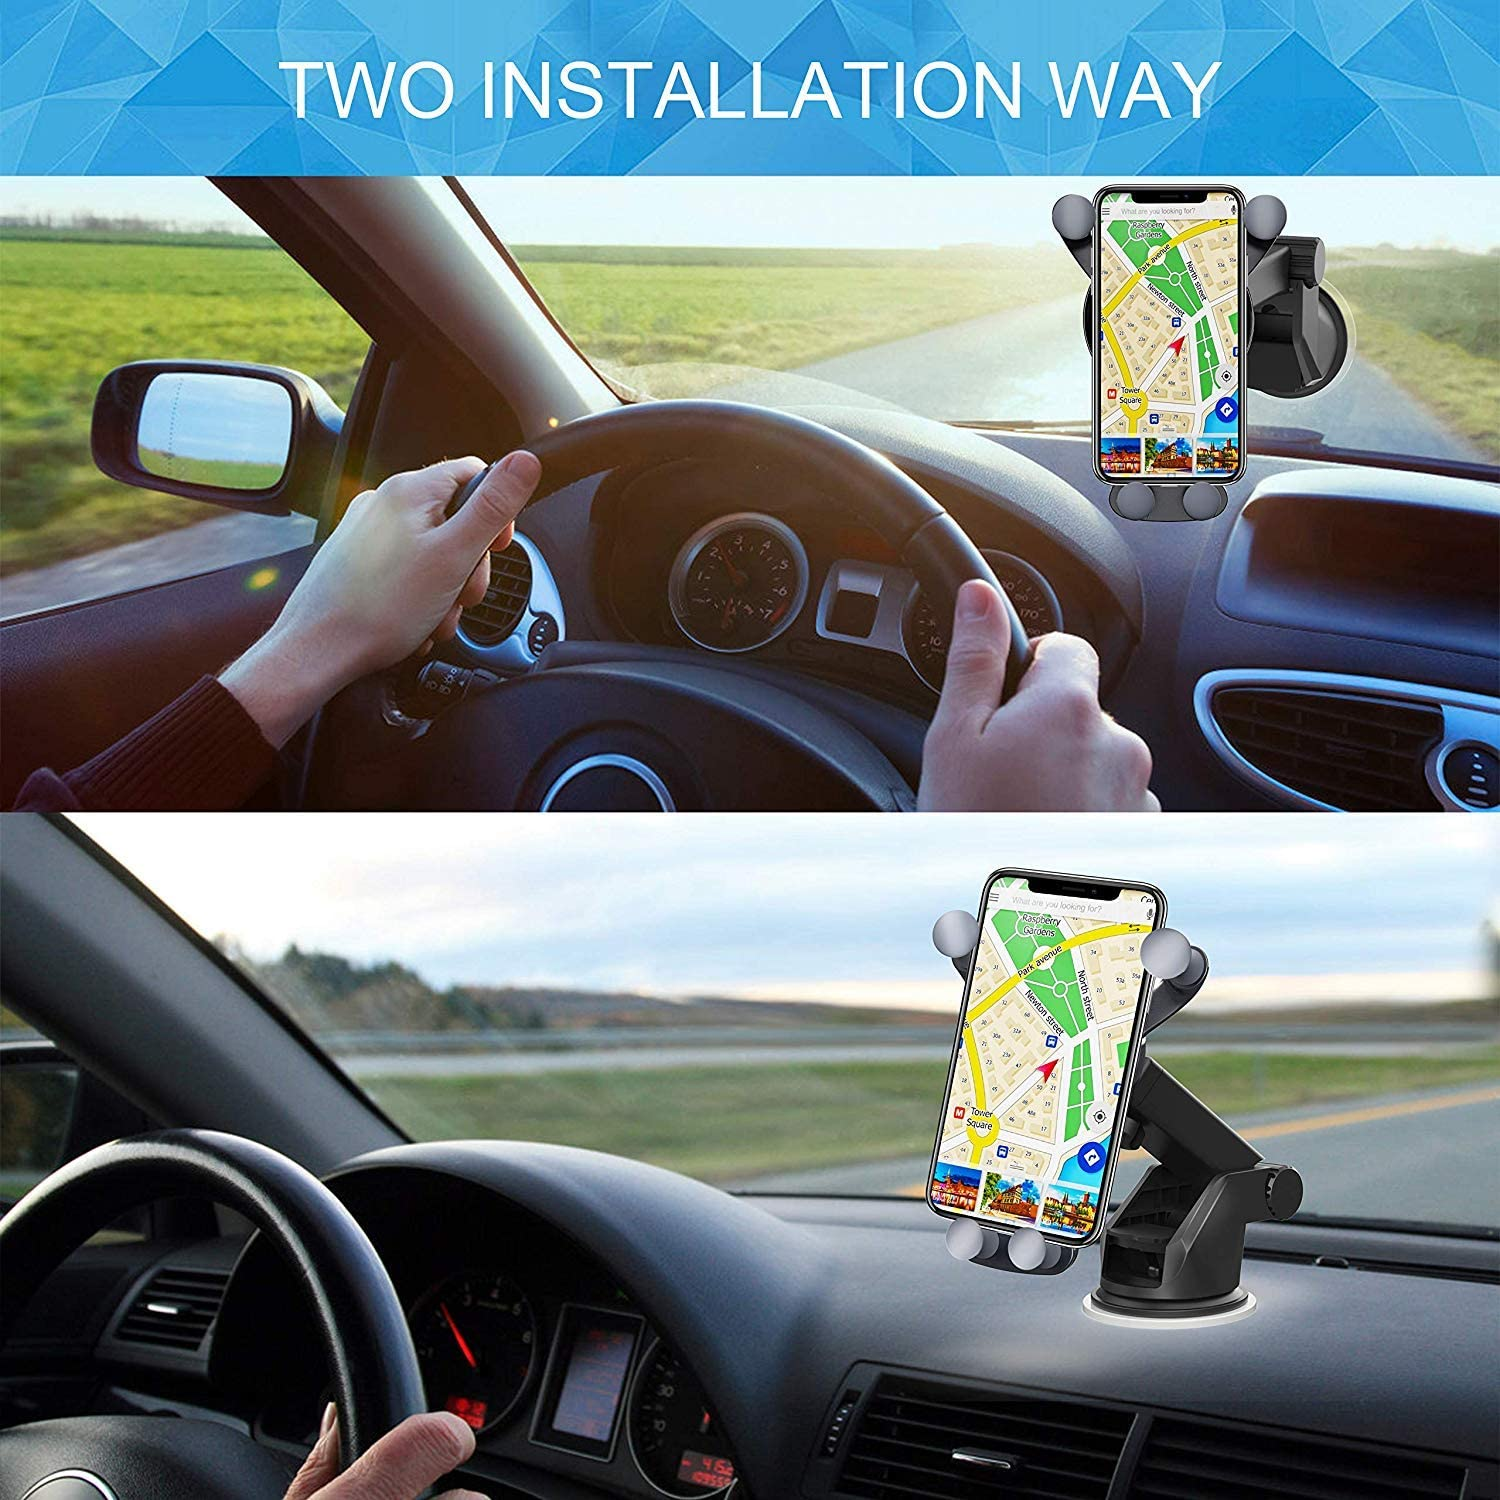 7.5W Compatible for iPhone Xs Max//Xs 10W//7.5W Fast Car Charging Benepower Wireless Car Charger Mount 10W Compatible for Samsung Galaxy S9//S9+//S8//S8+//Note 8 Dashboard /& Windshield Cell Phone Holder